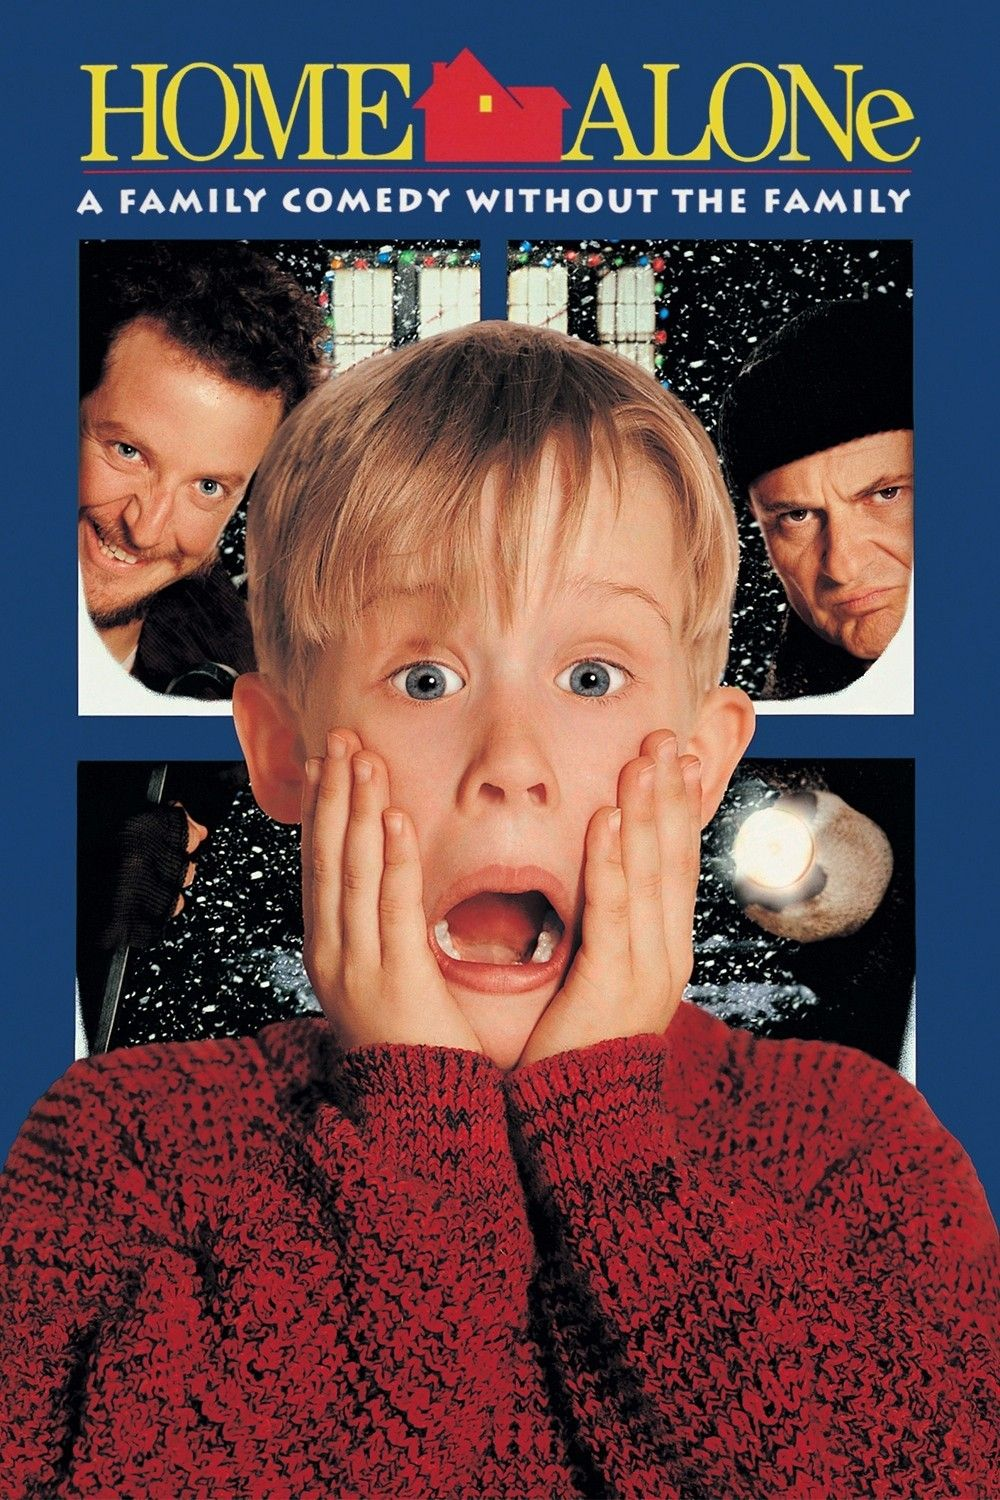 Pin by PRR80 on Movies | Films, Home Alone, Christmas Movies